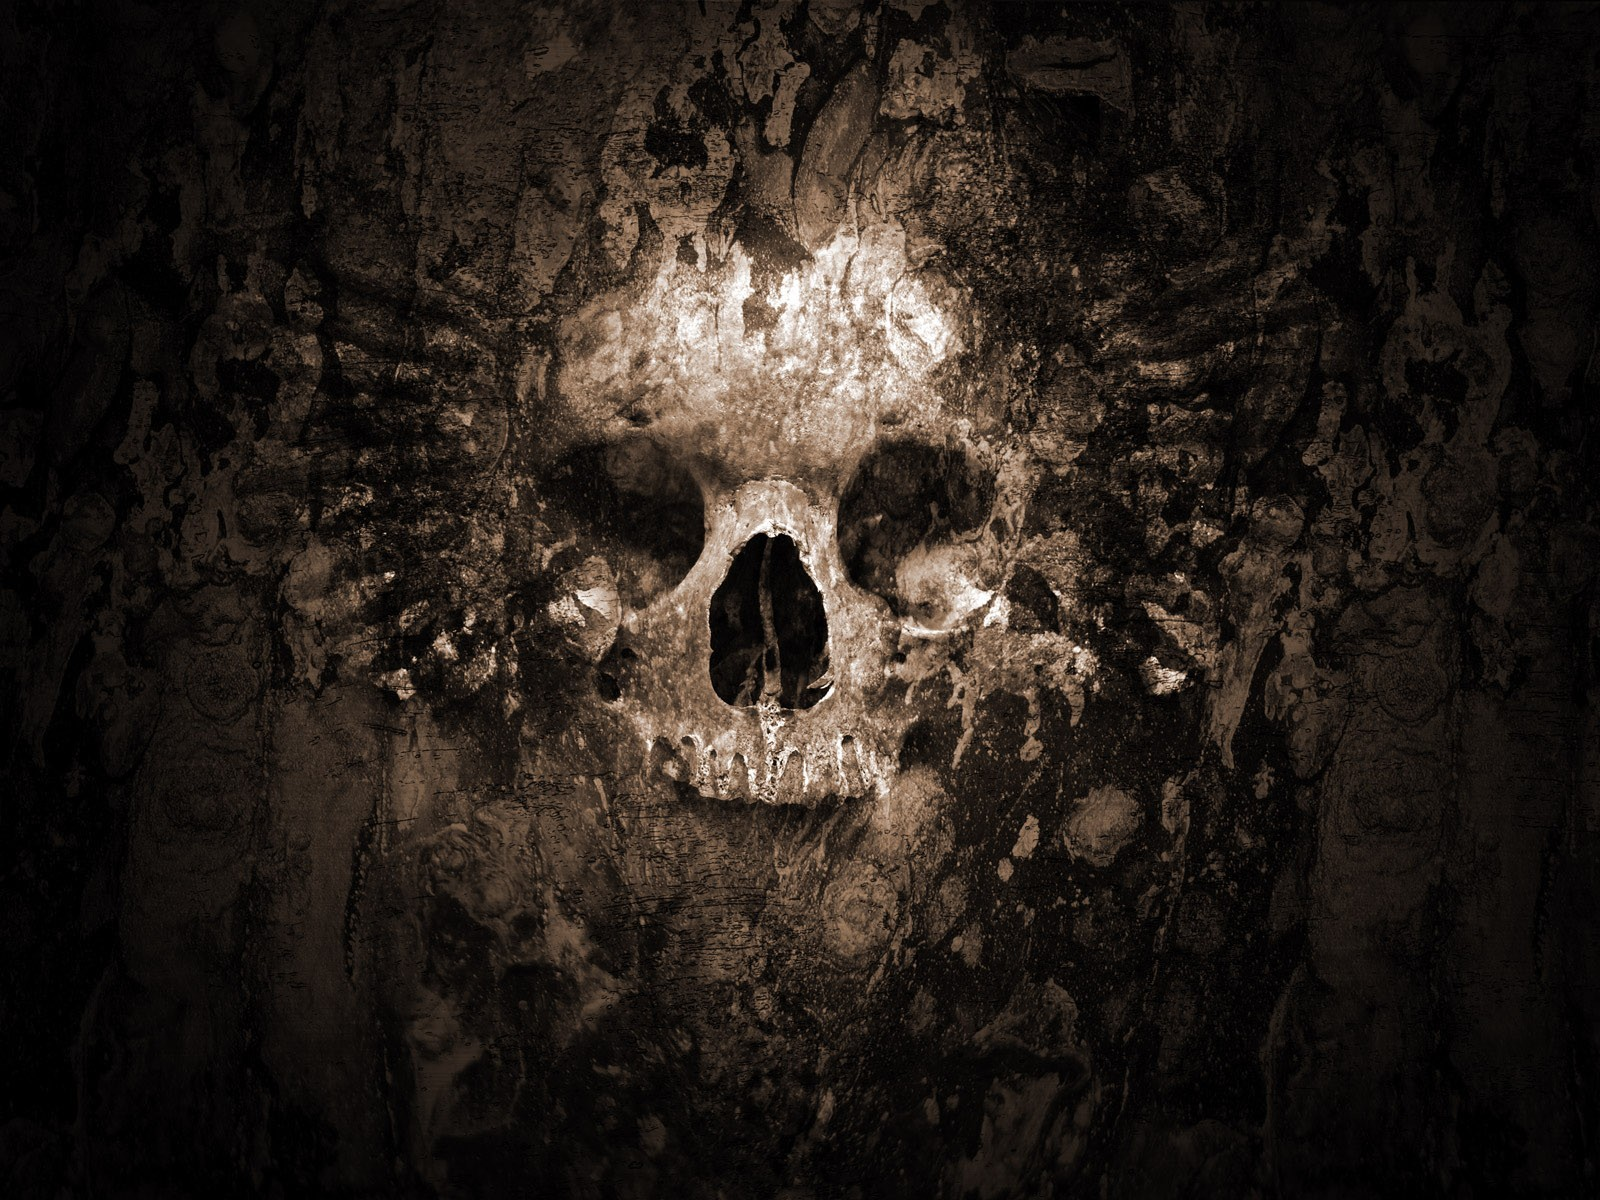 Gothic Skull wallpaper. Wallpapers 3d for desktop, 3d pictures